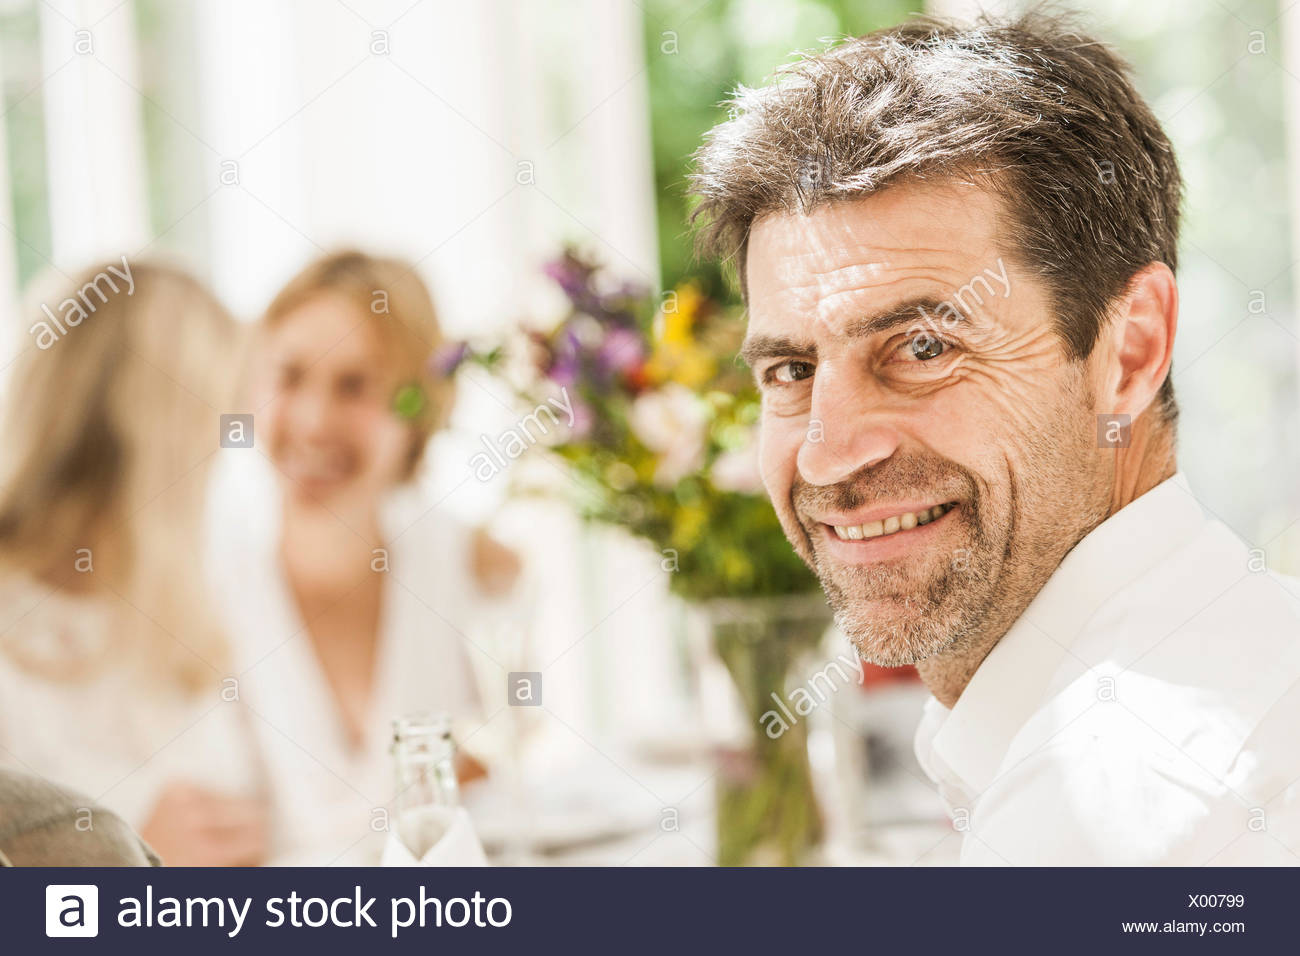 Portrait of mature man at family birthday party - Stock Image